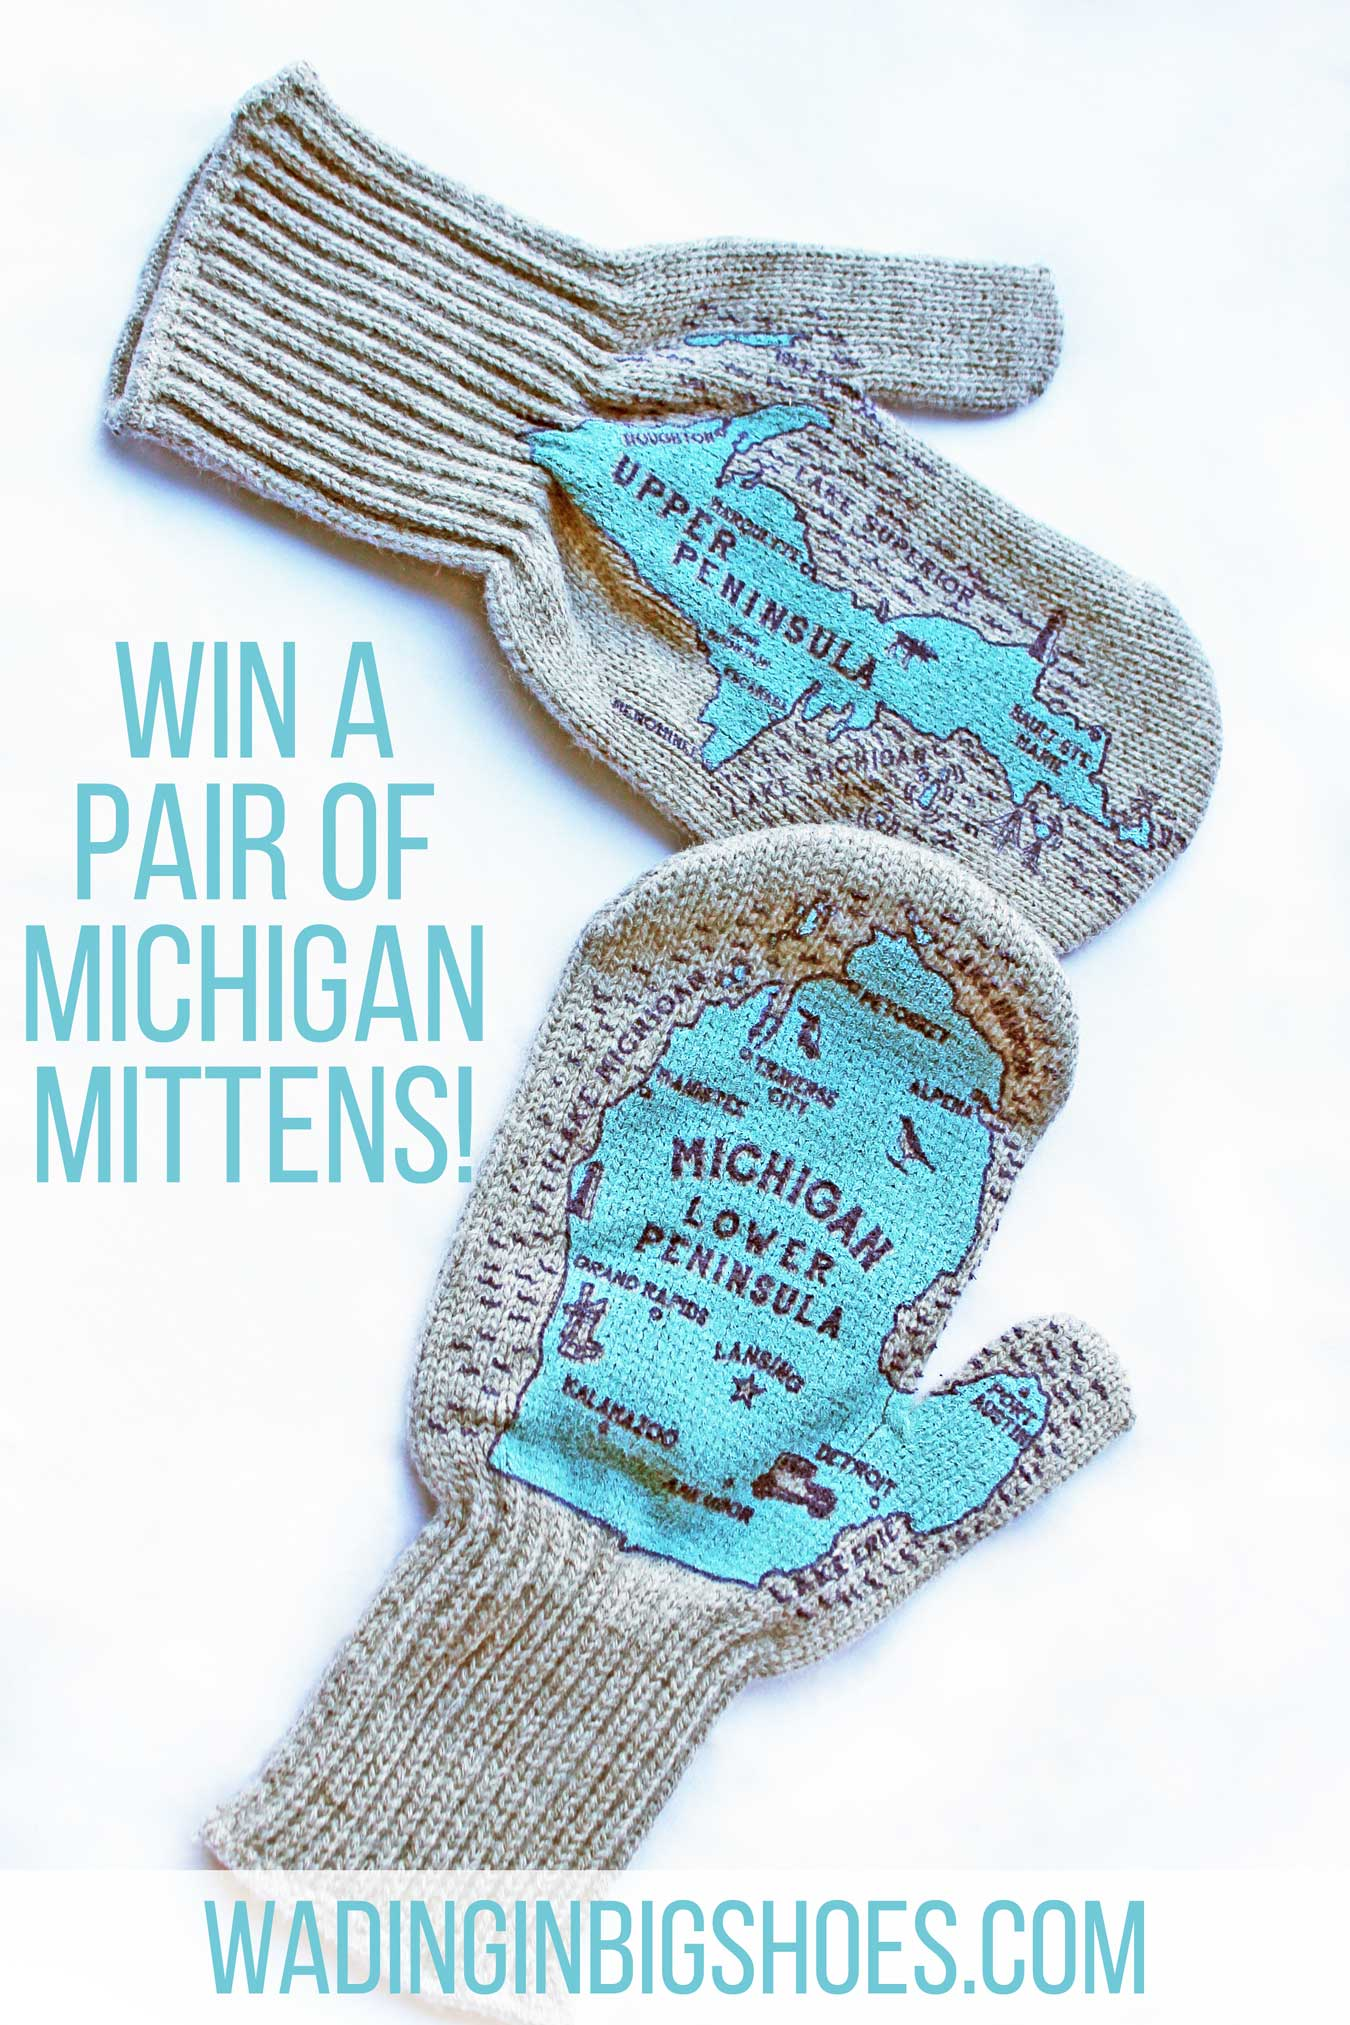 wading-in-big-shoes-win-a-pair-of-michigan-mittens